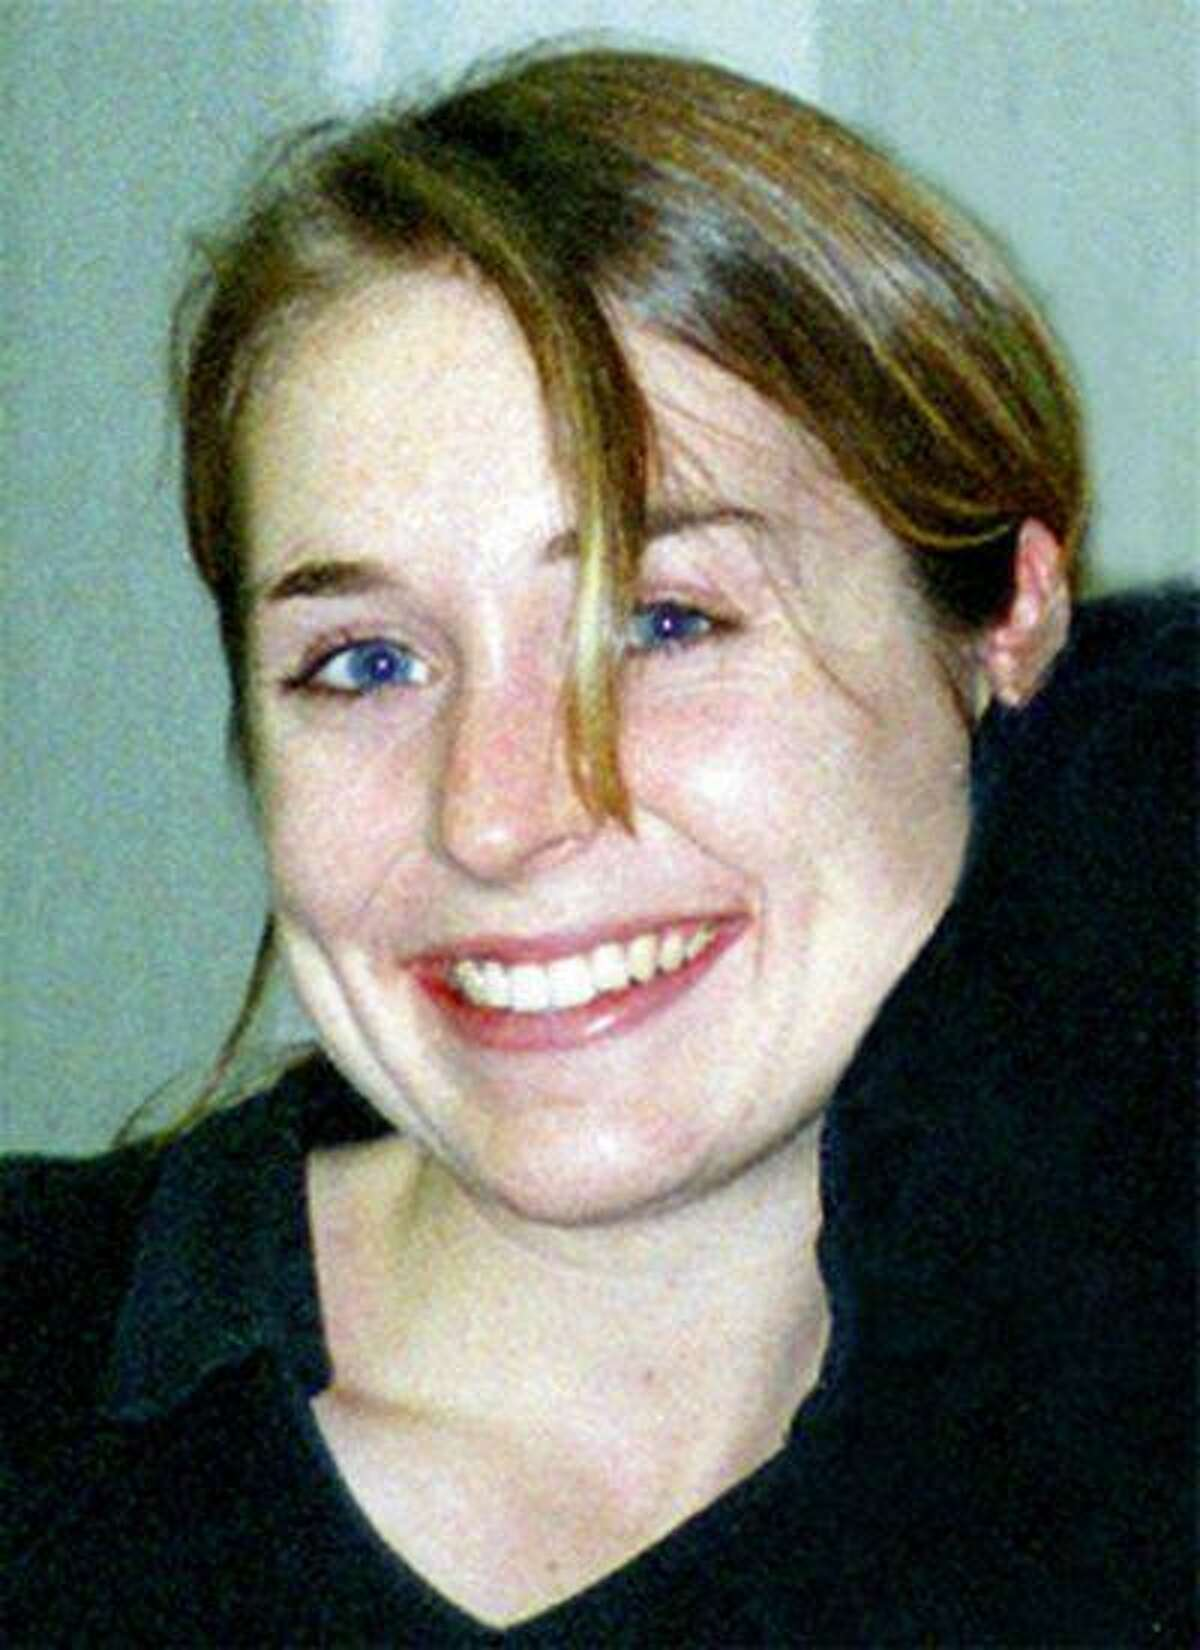 Suzanne Jovin, a Yale student who was slain in New Haven in 1998